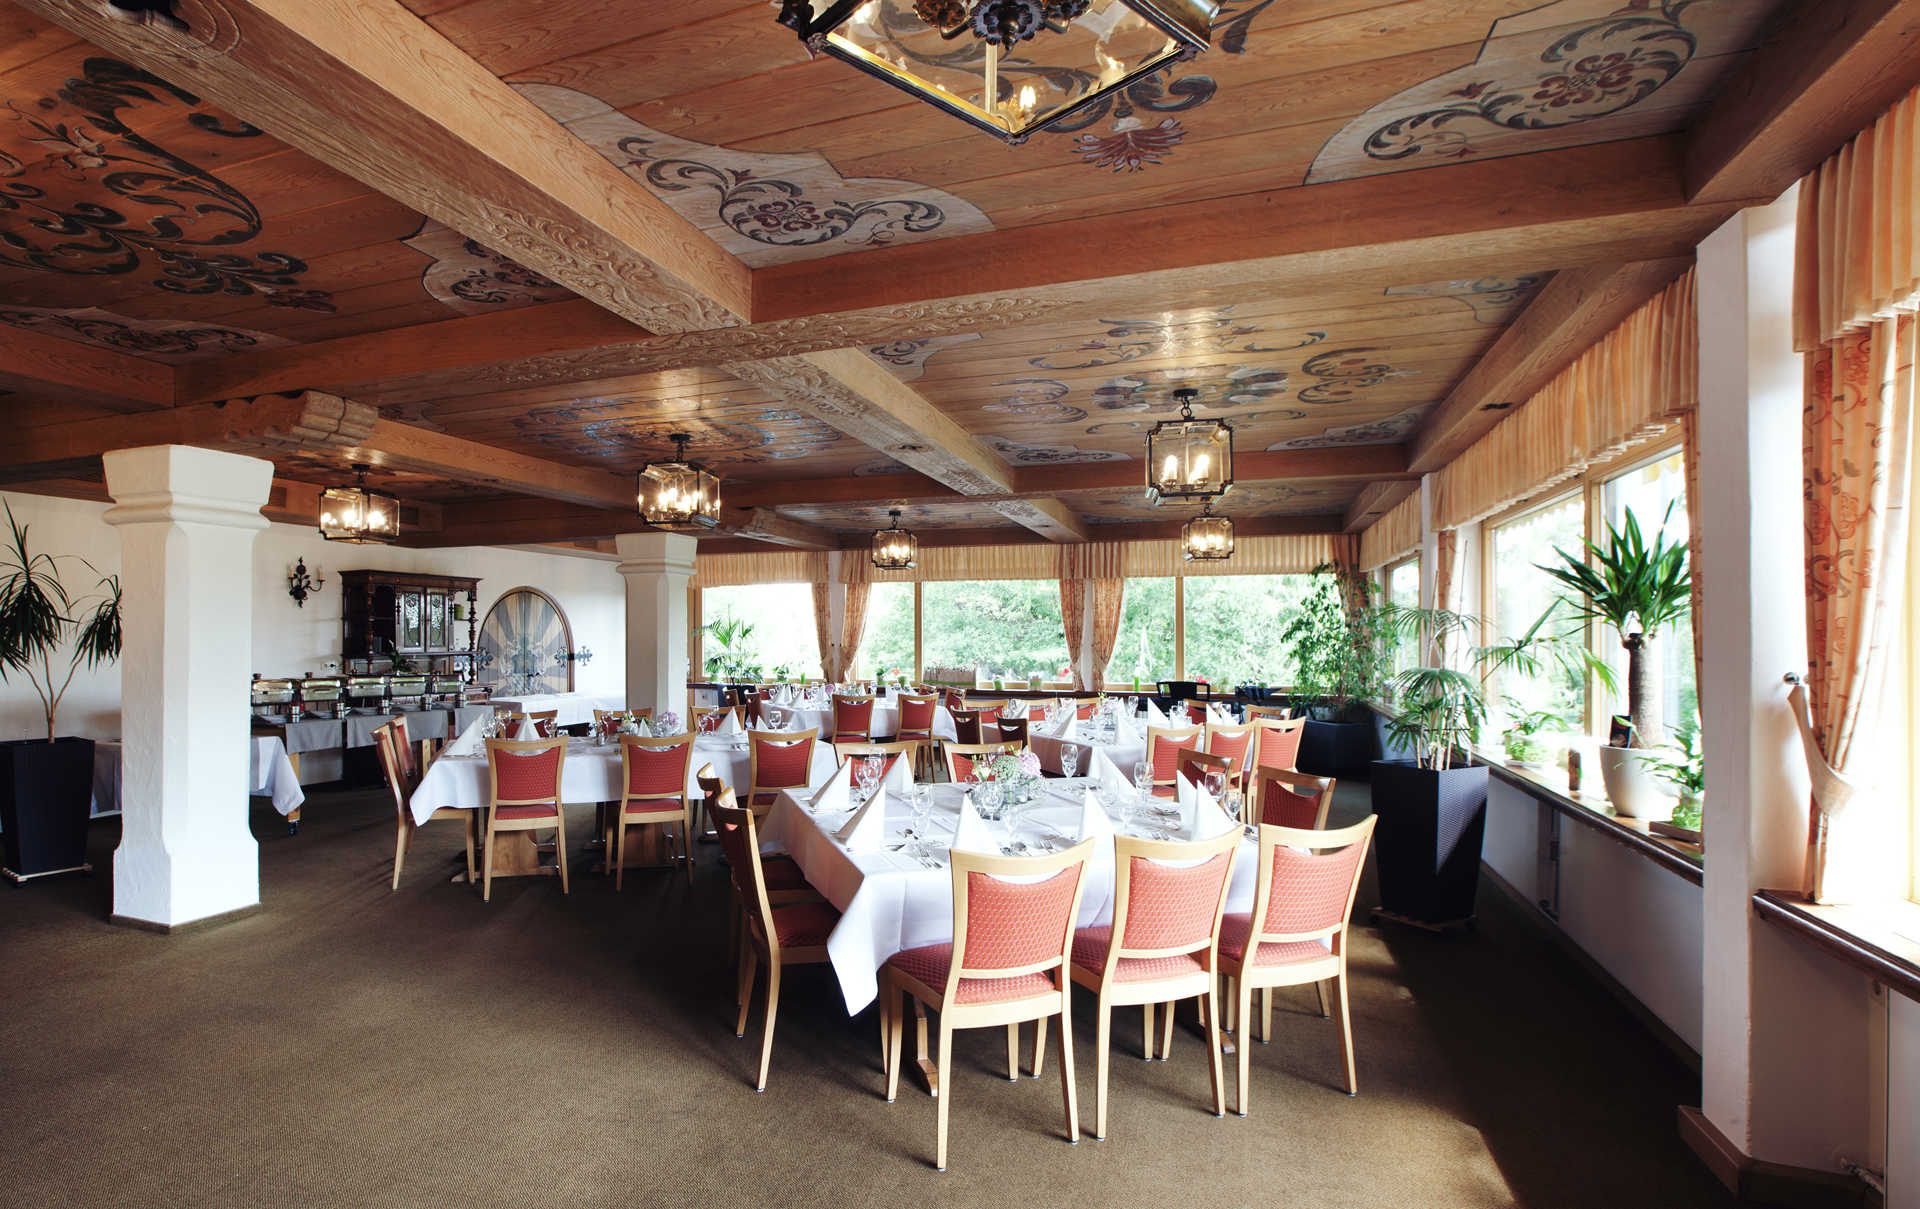 Restaurant room with set up tables